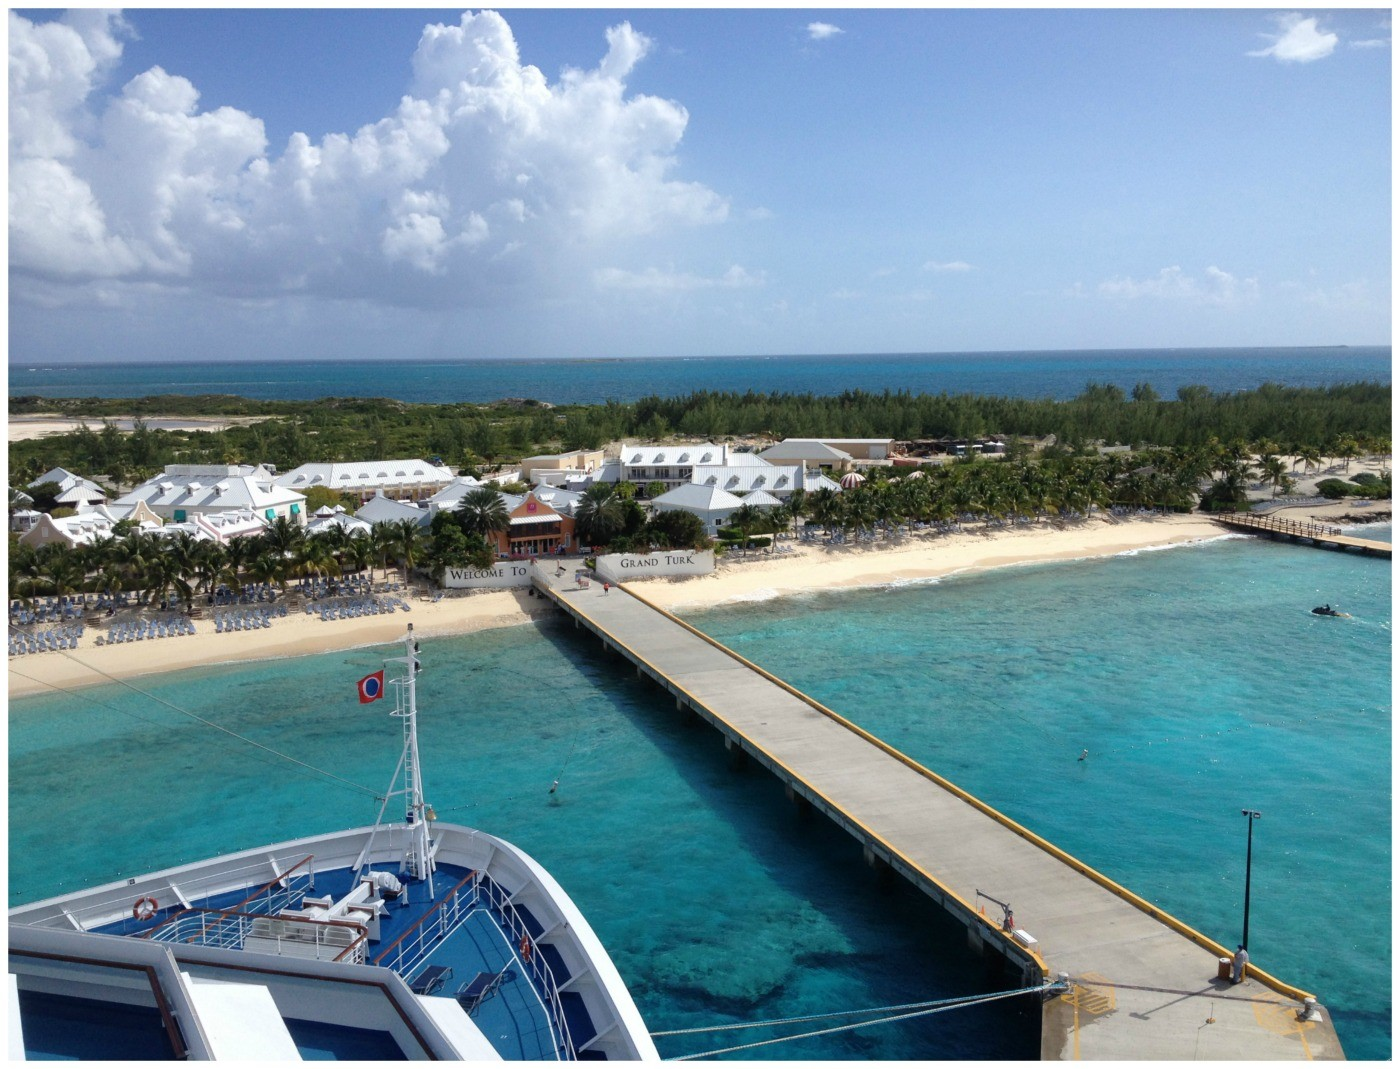 Visiting Grand Turk In The Turks And Caicos Islands